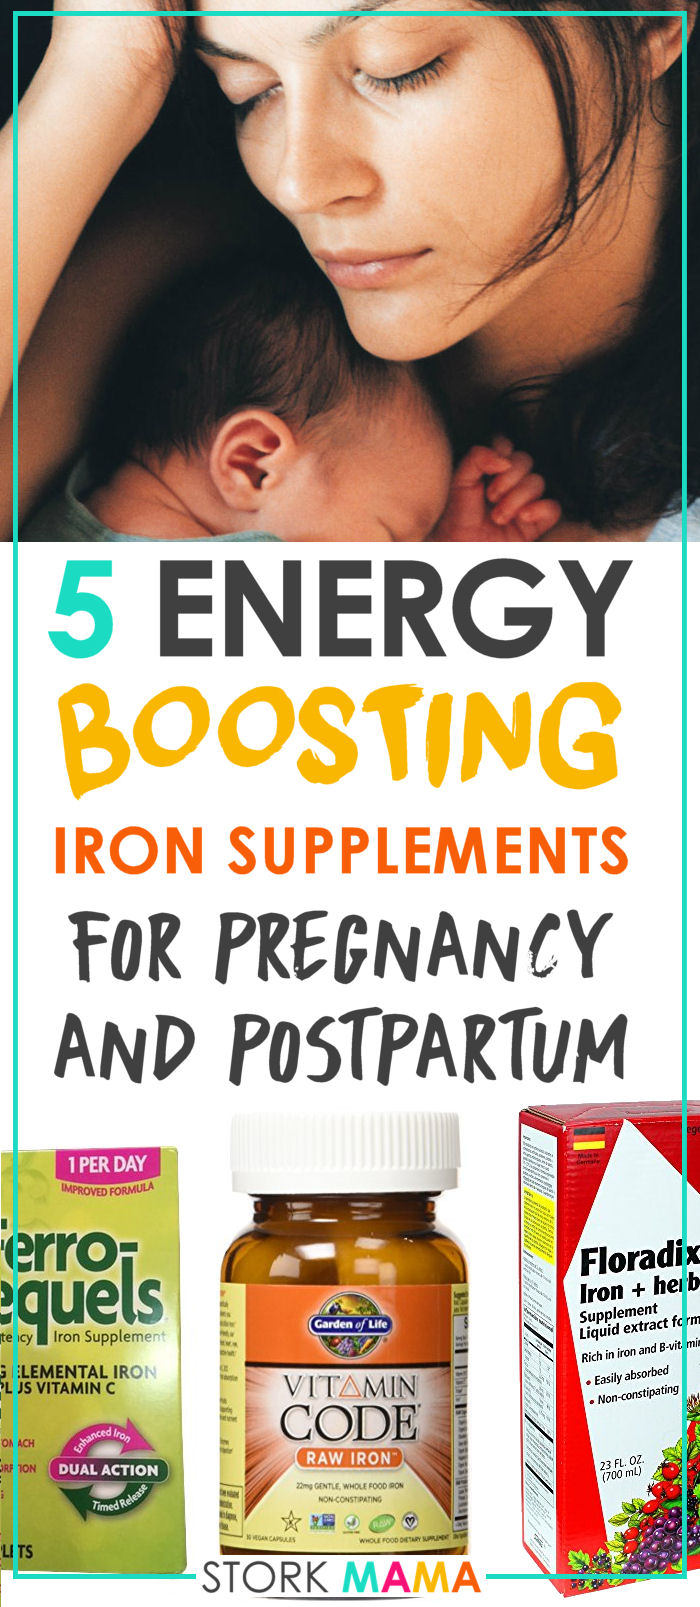 Feeling constantly drained by pregnancy or after birth? You may have anemia. Iron tablets will help you feel better, give you more energy and help prepare you for birth or recover better. Best Iron Supplement for Pregnancy Anemia | Stork Mama